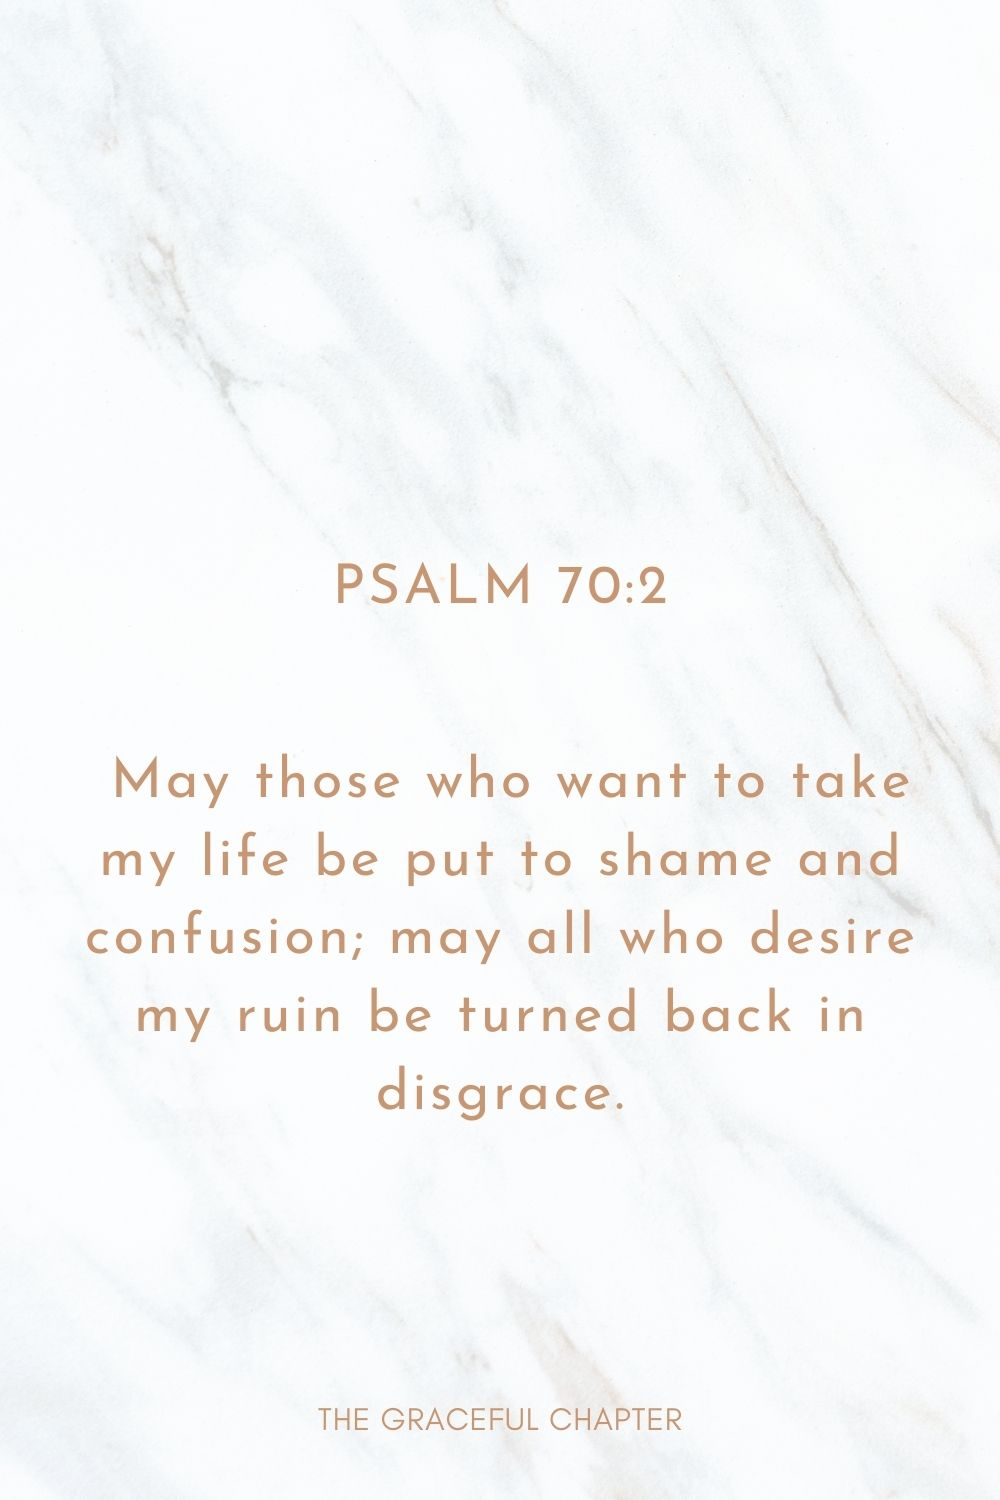 May those who want to take my life be put to shame and confusion; may all who desire my ruin be turned back in disgrace. Psalm 70:2